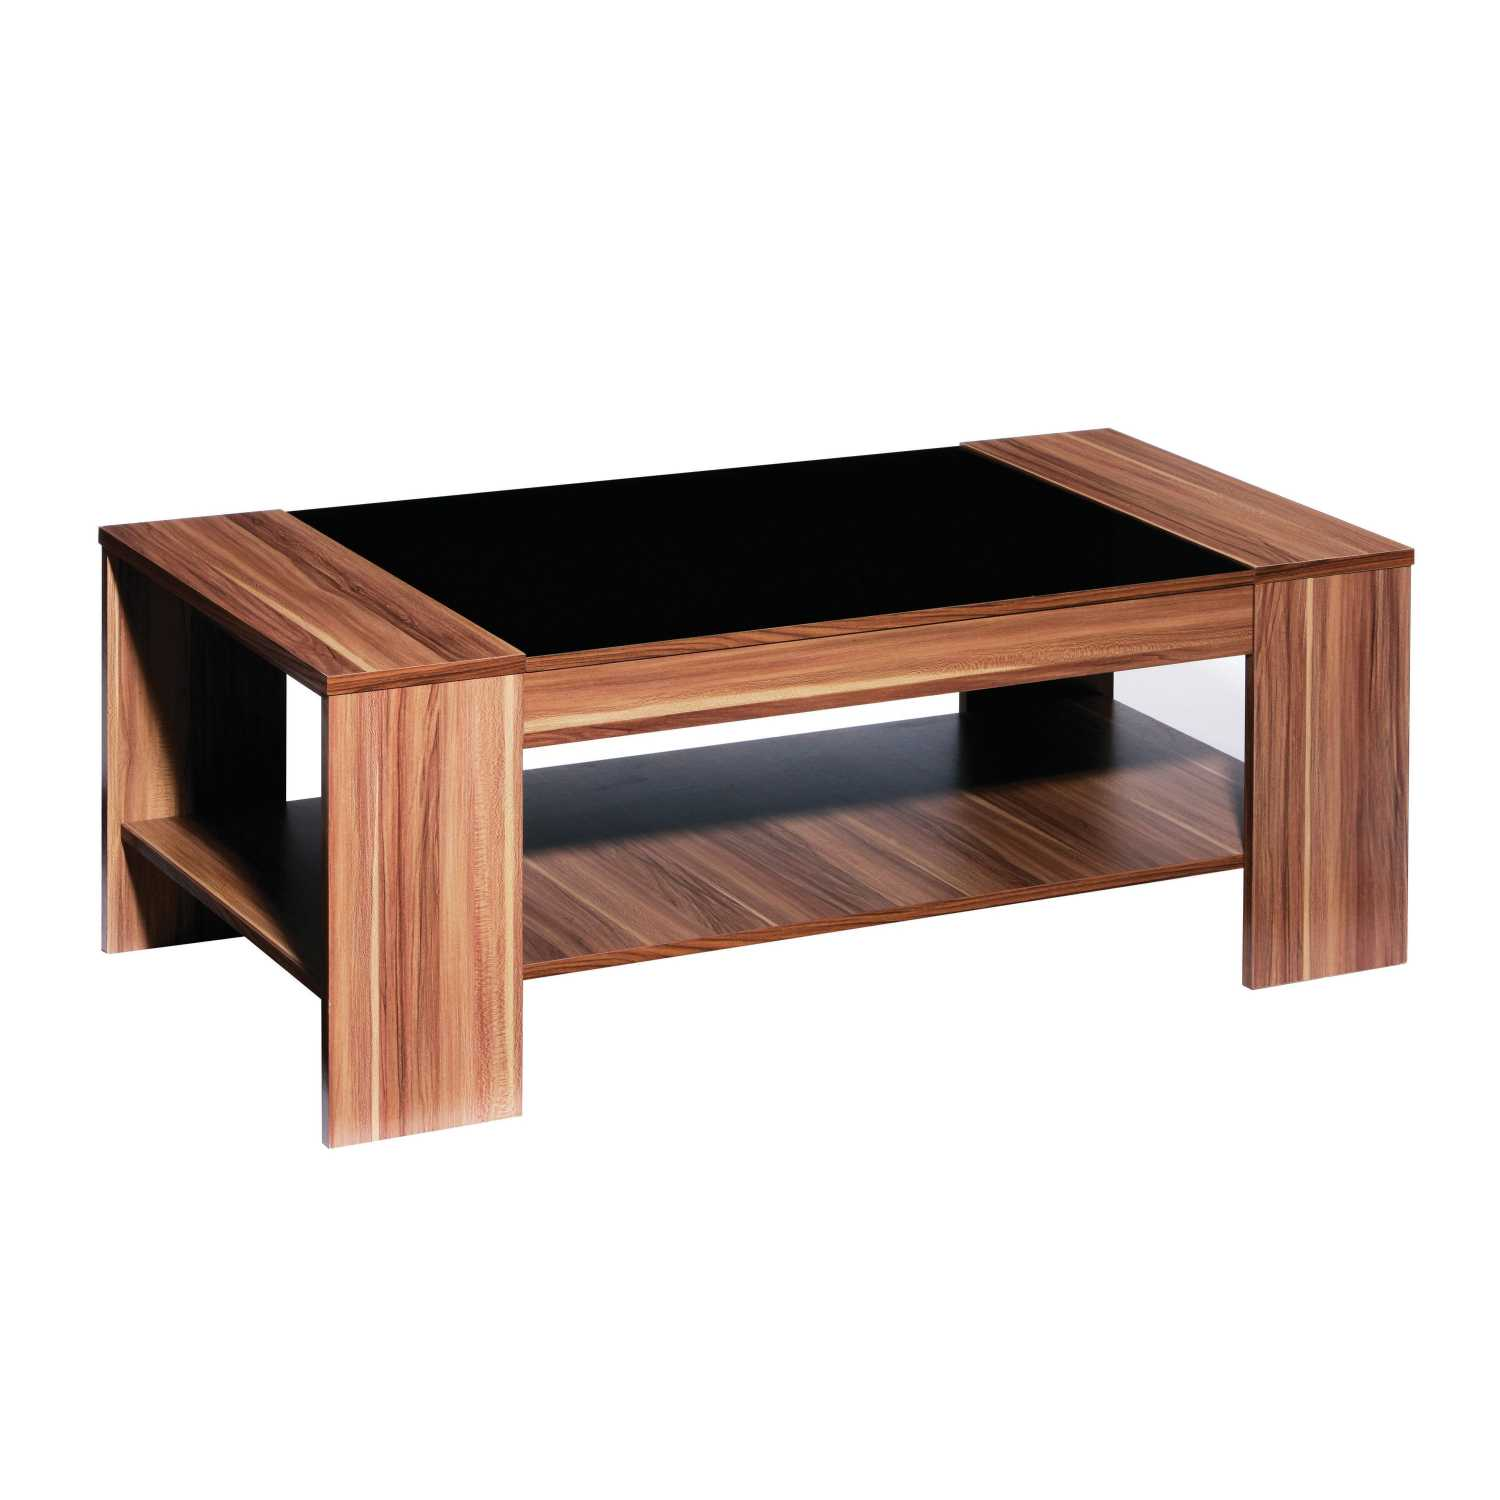 Fargo Walnut Veneer Coffee Table With Black High Gloss Detail